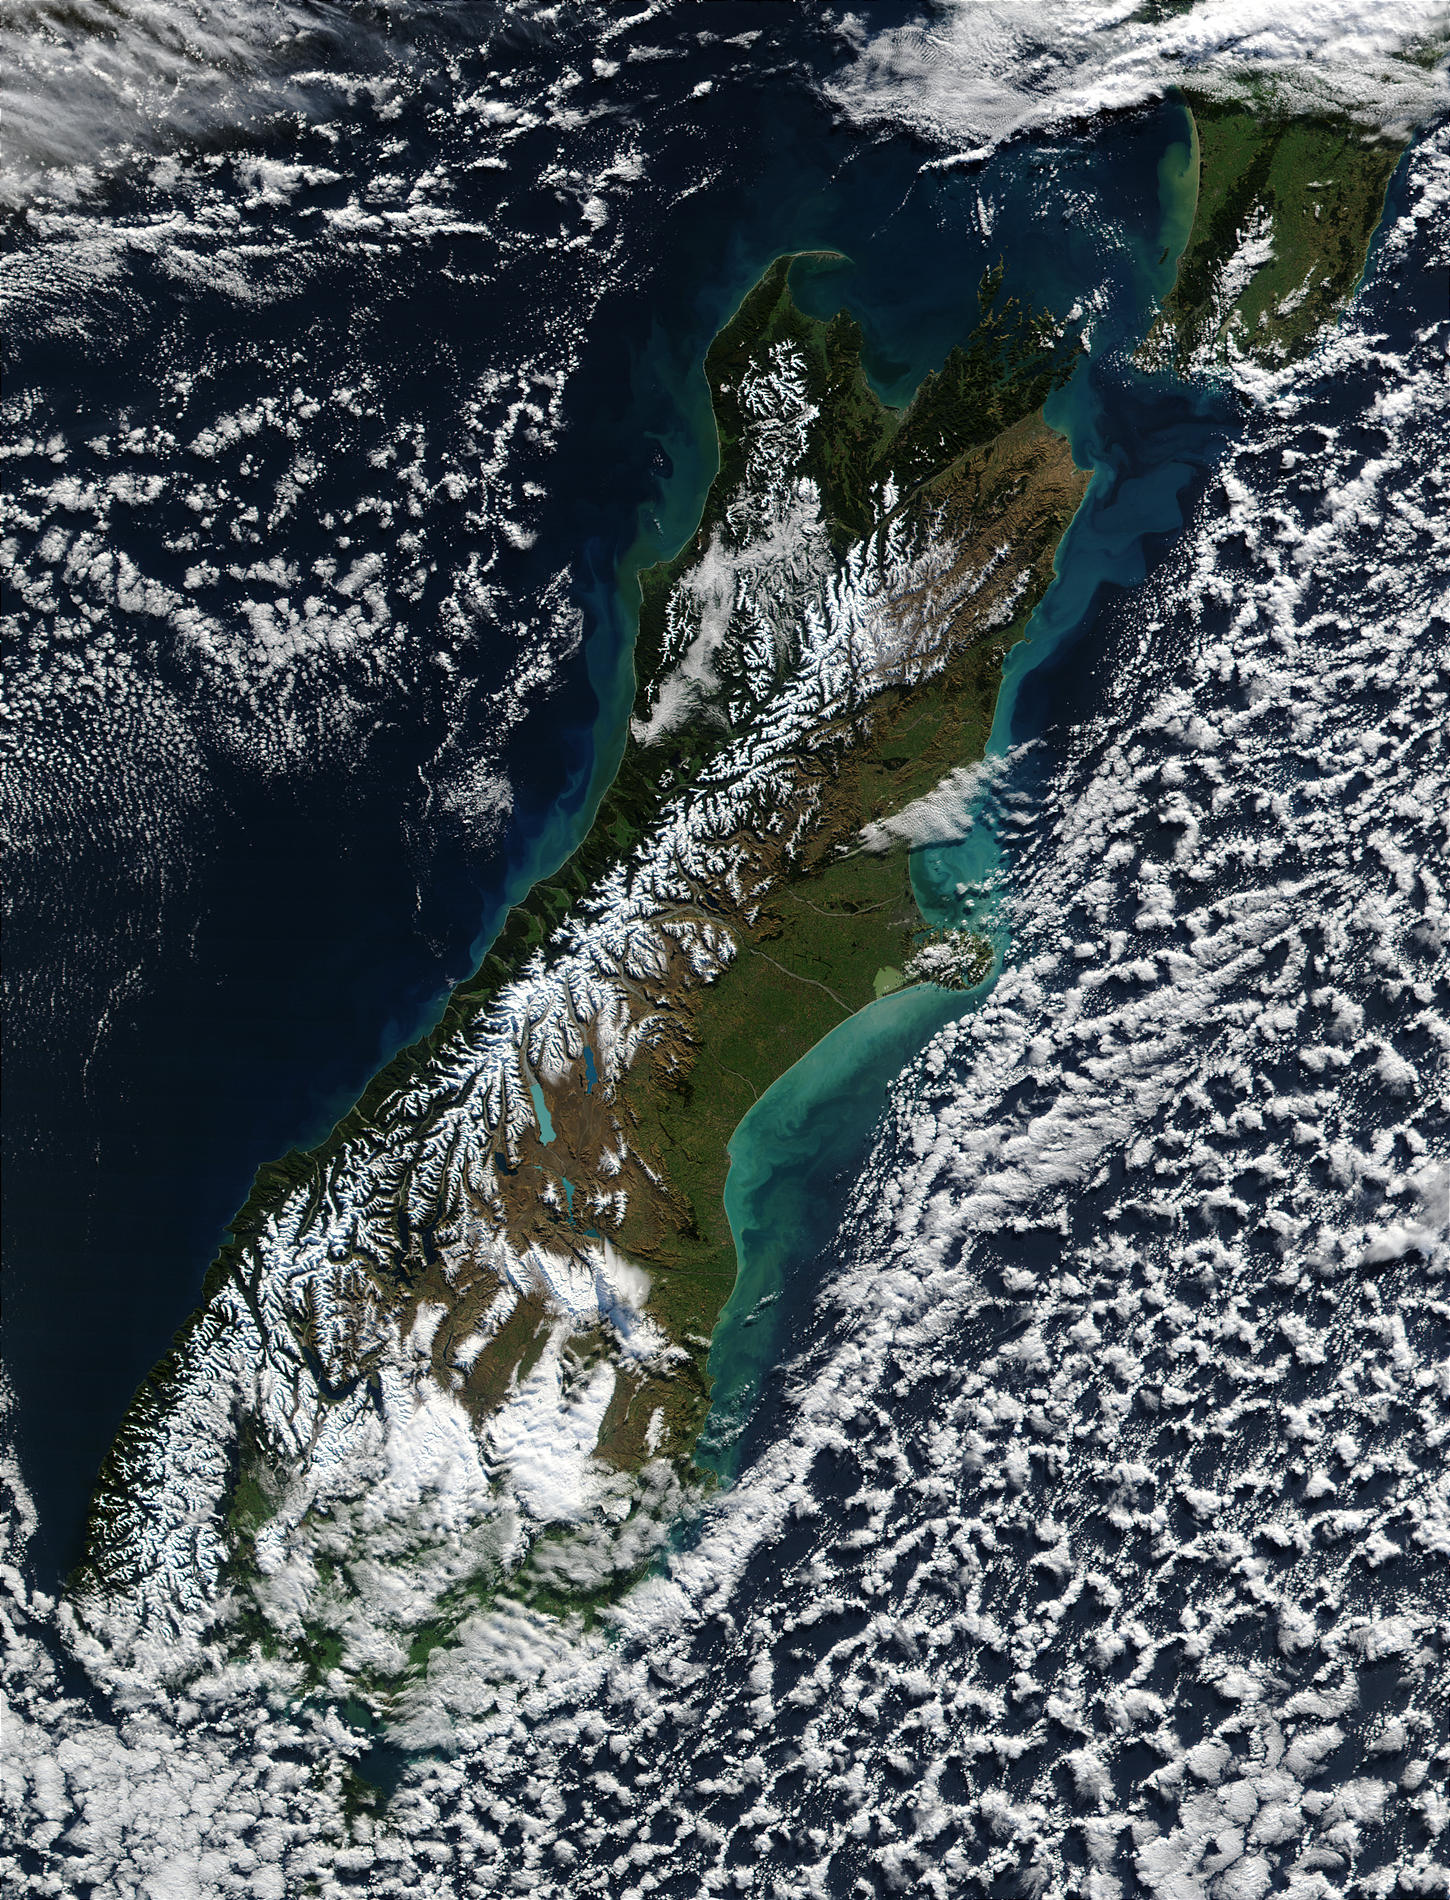 Phytoplankton bloom and sediments along the coasts of New Zealand - related image preview